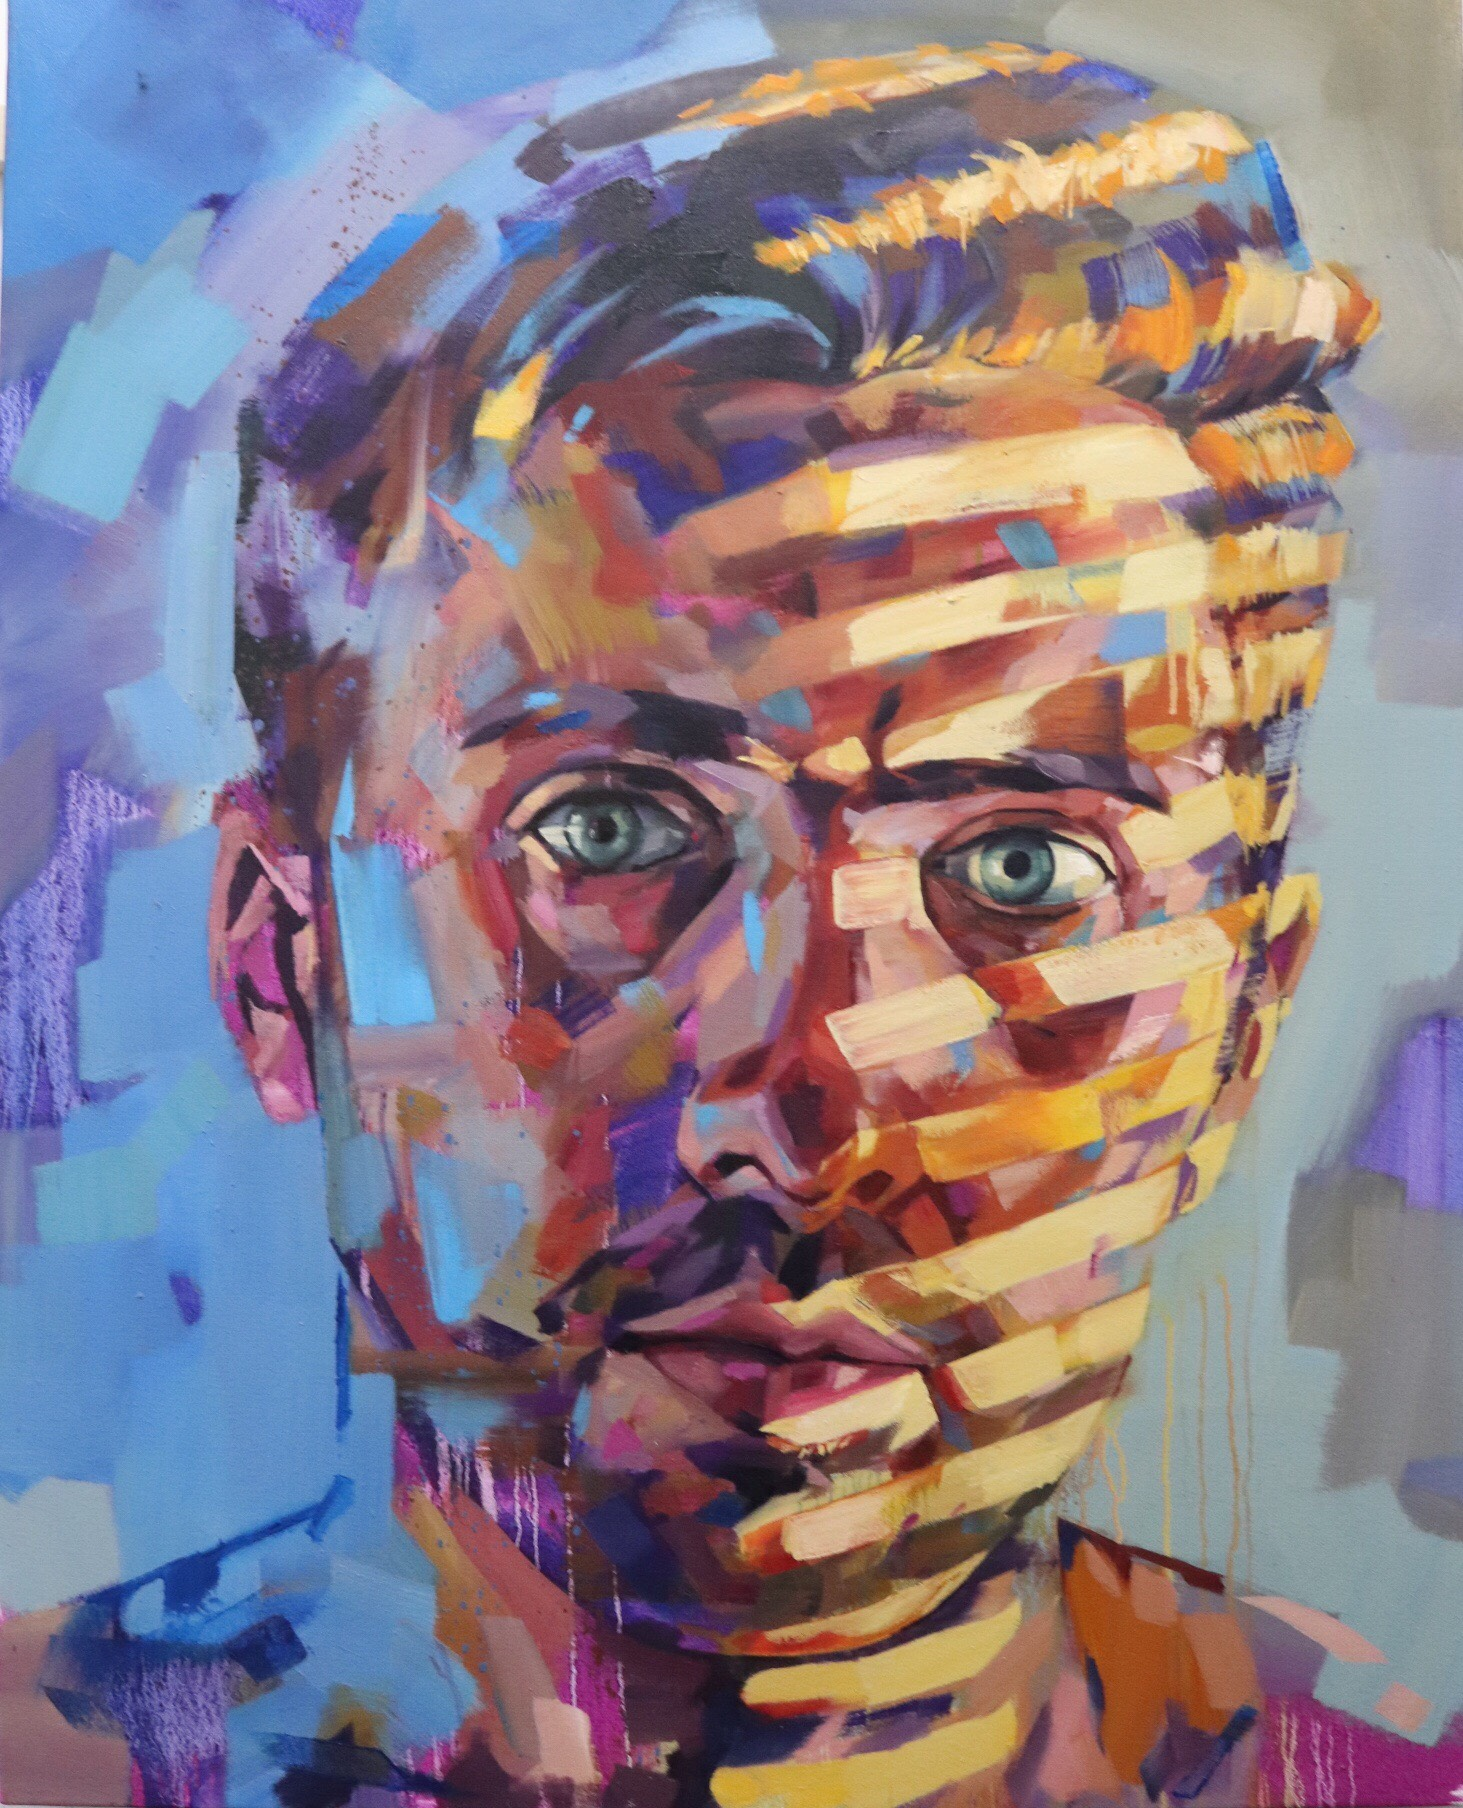 Hollow Stare, 2018 | Oil on canvas | 80 x 100 cm | £1,800